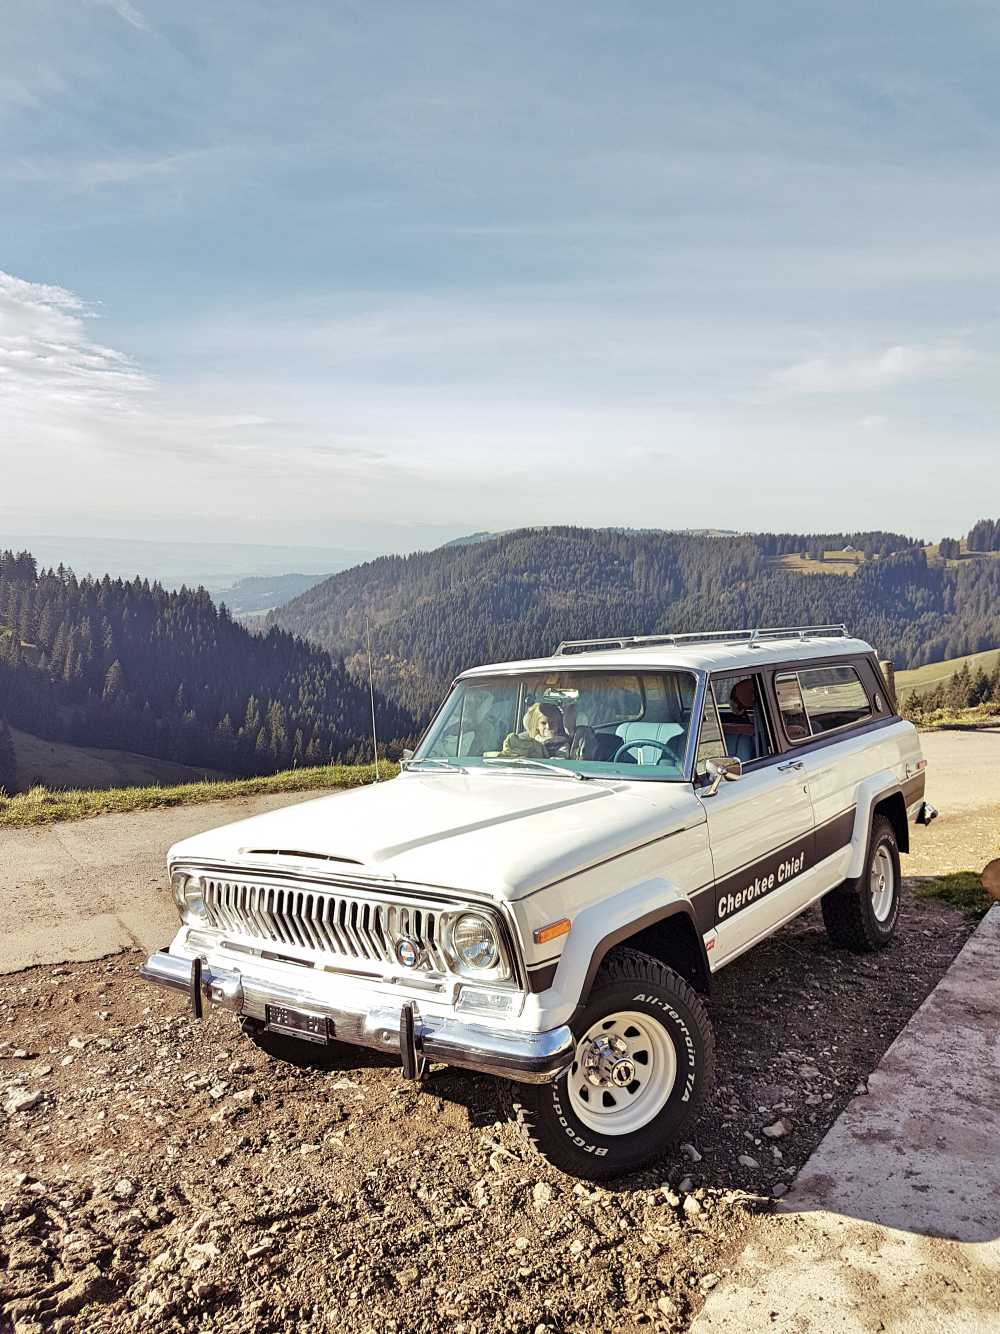 jeep-cherokee-chief-1978-shooting-moleson-50